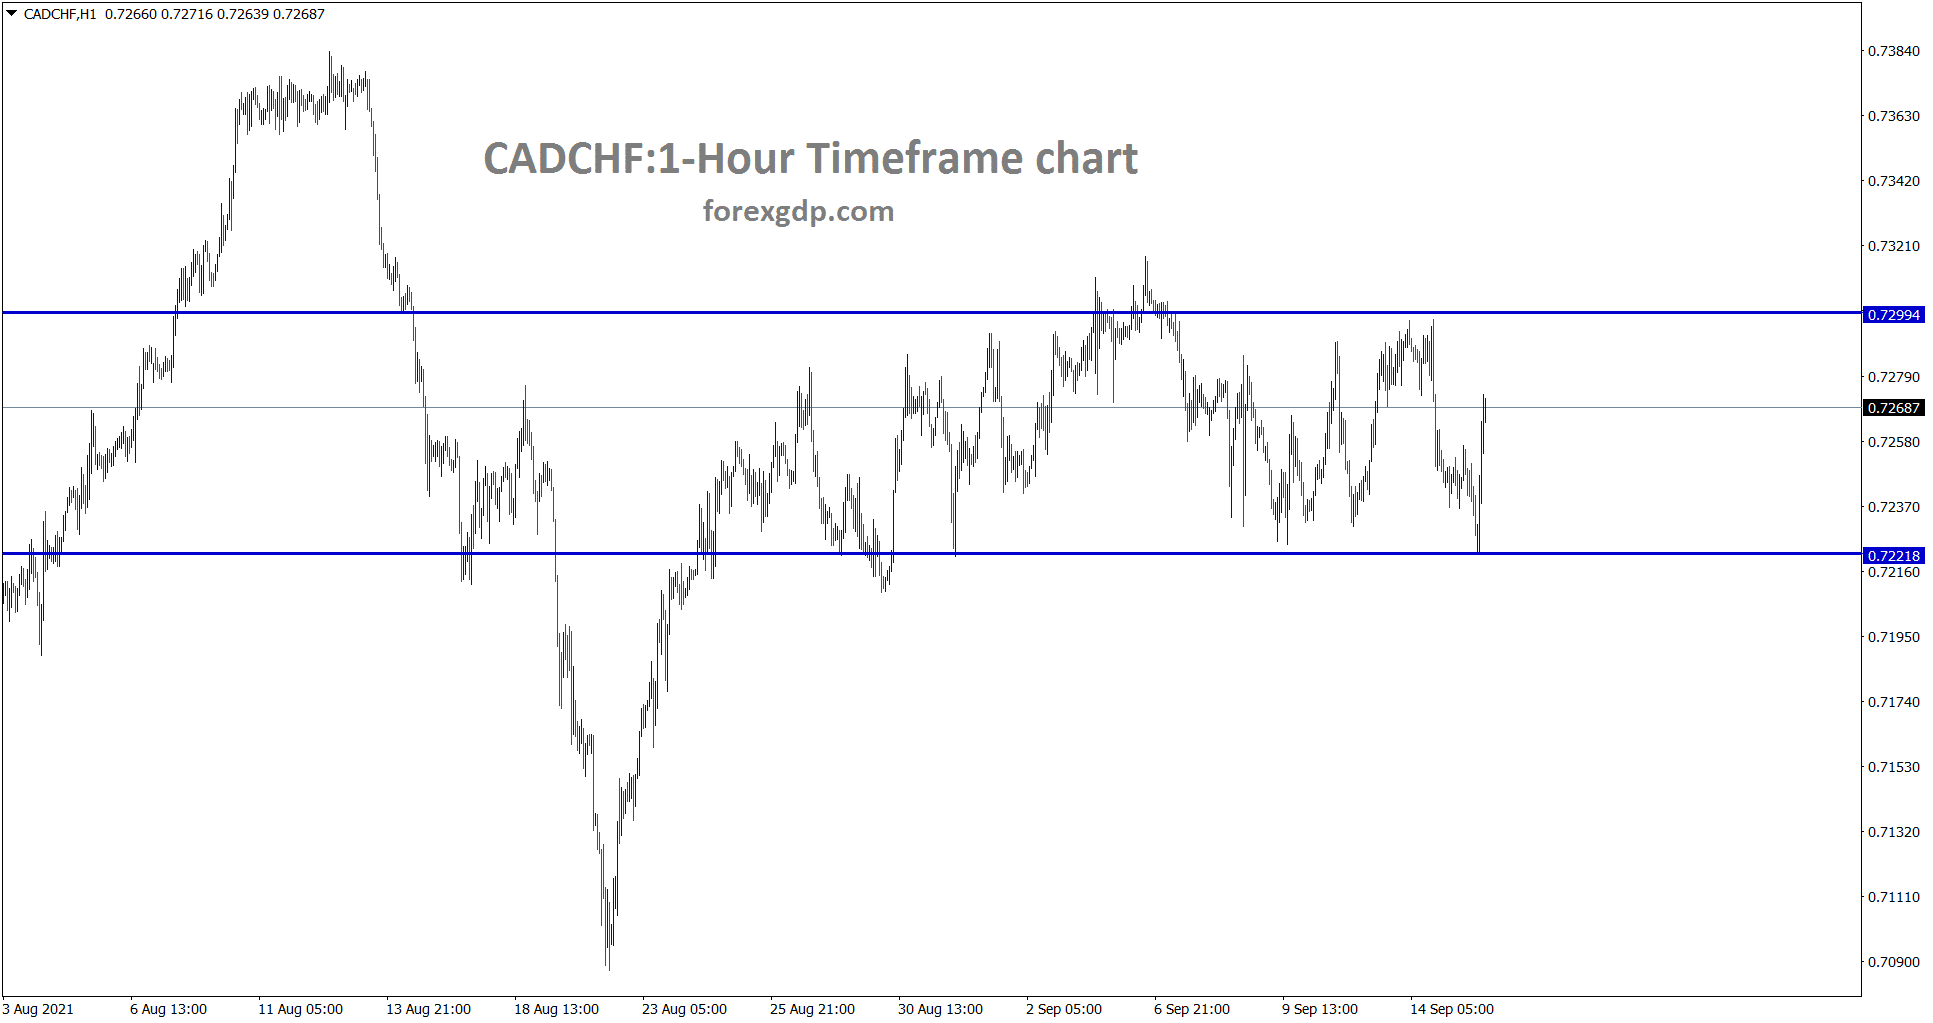 CADCHF is ranging between the support resistance area